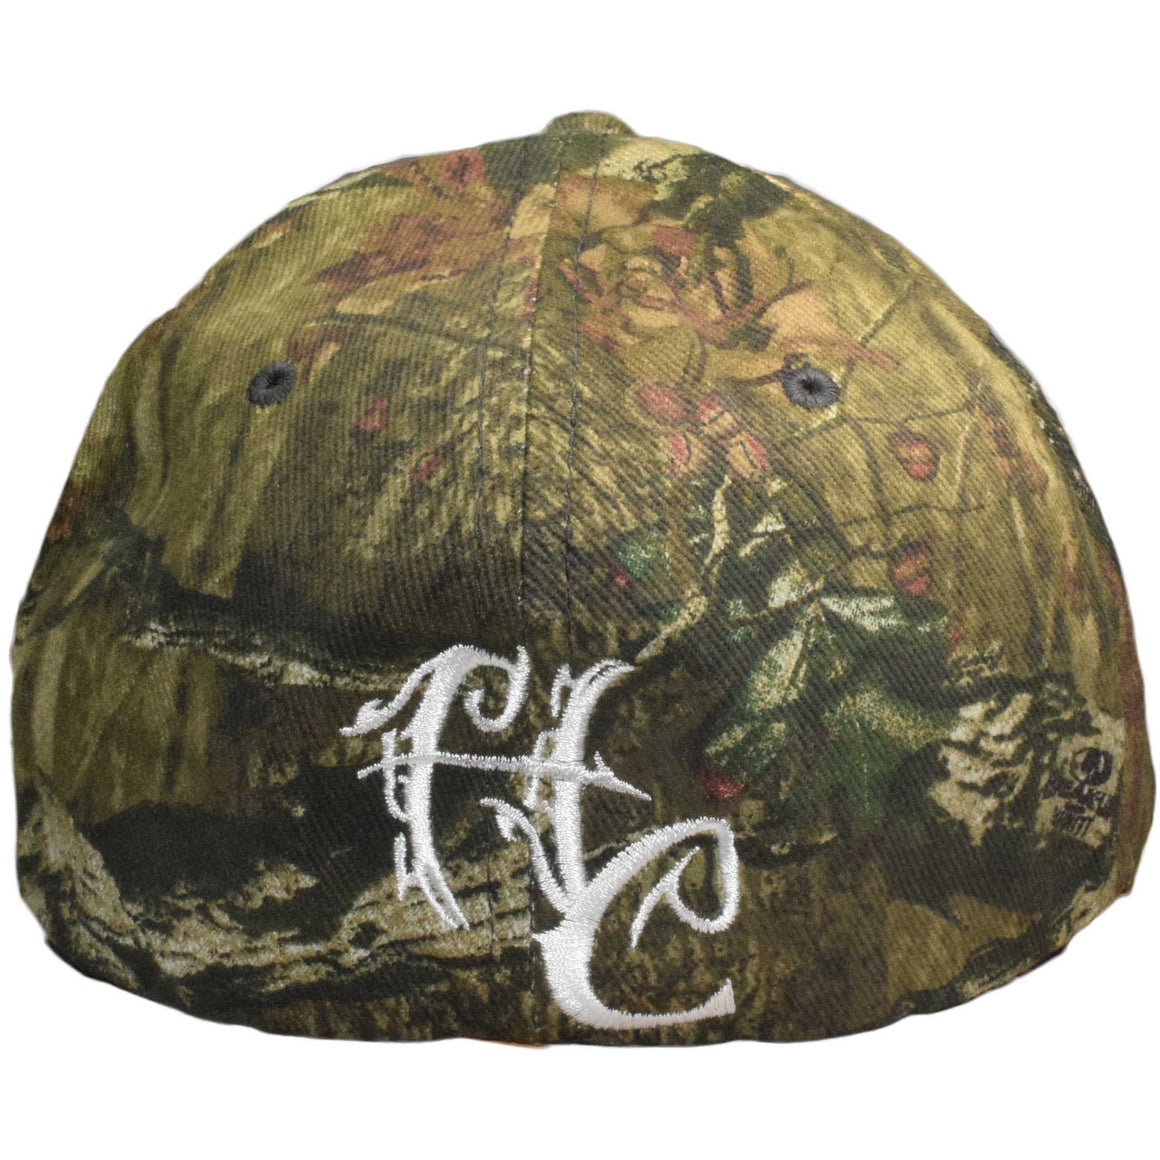 Curved Bill Treelogo Outline Mossy Oak Infinity Flex Hat - Humboldt Clothing Company